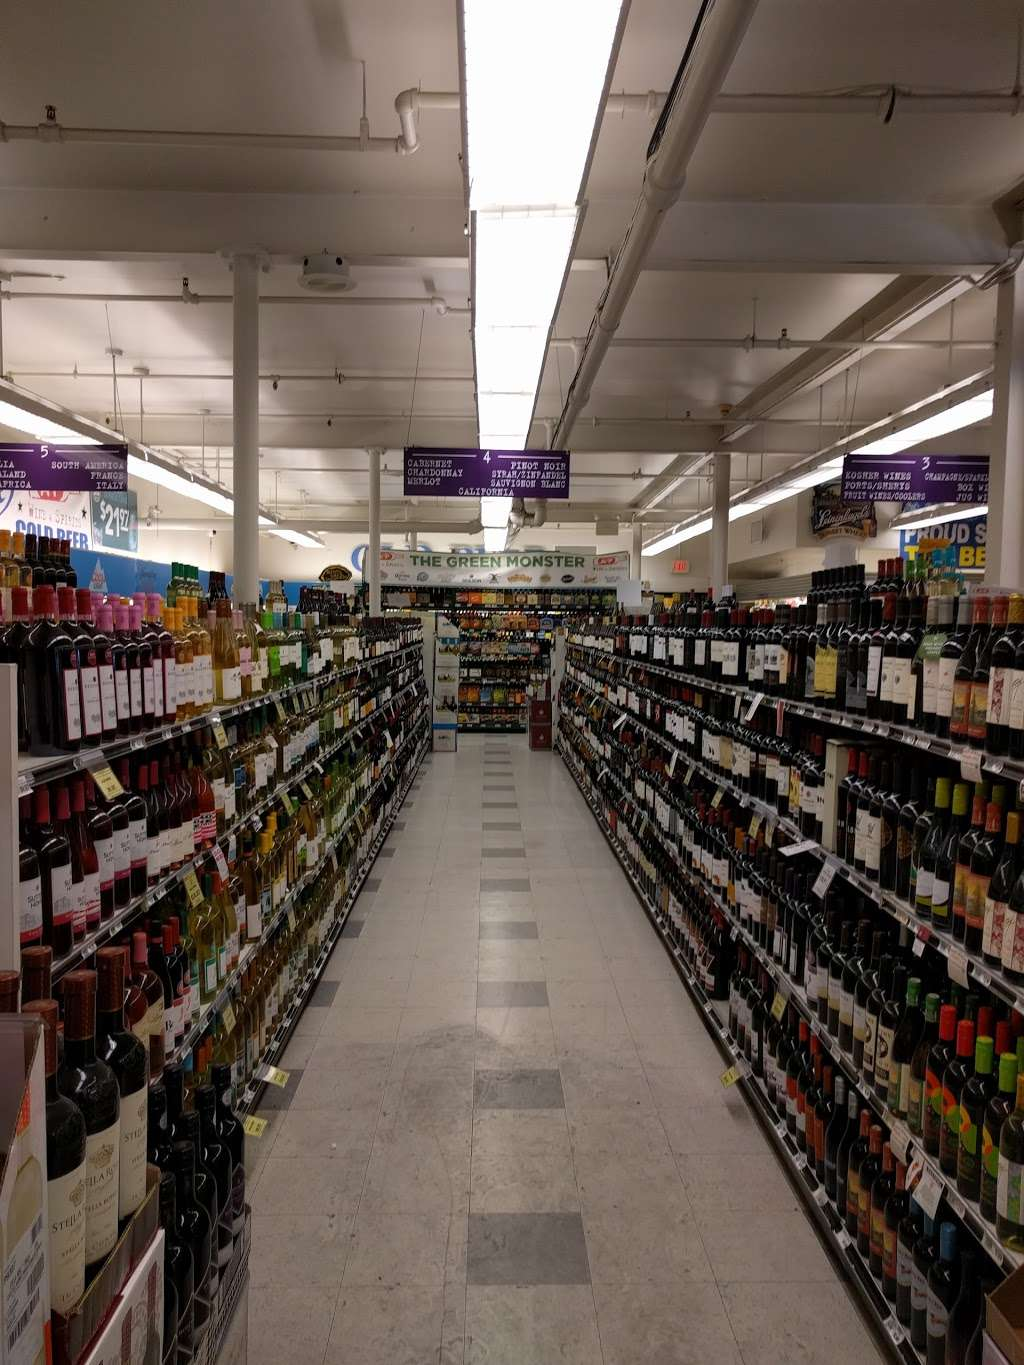 Palisades Wine & Liquor - store  | Photo 6 of 10 | Address: 534 Bergen Blvd, Palisades Park, NJ 07650, USA | Phone: (201) 944-0104